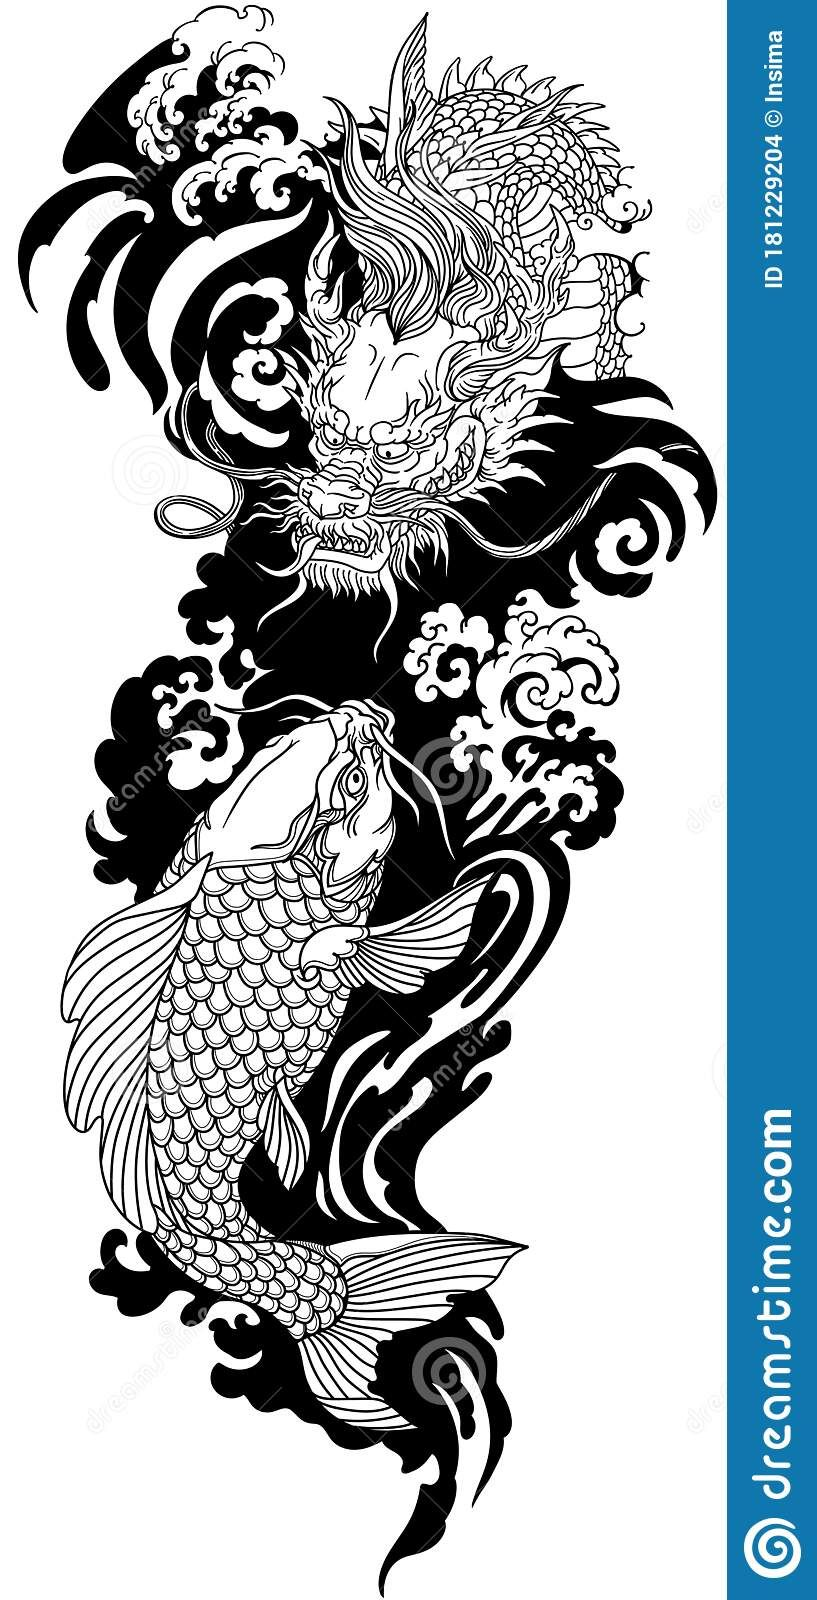 East Asian Dragon And Koi Carp. Black And White Tattoo Stock Vector - Illustration of energy, myth: 181229204